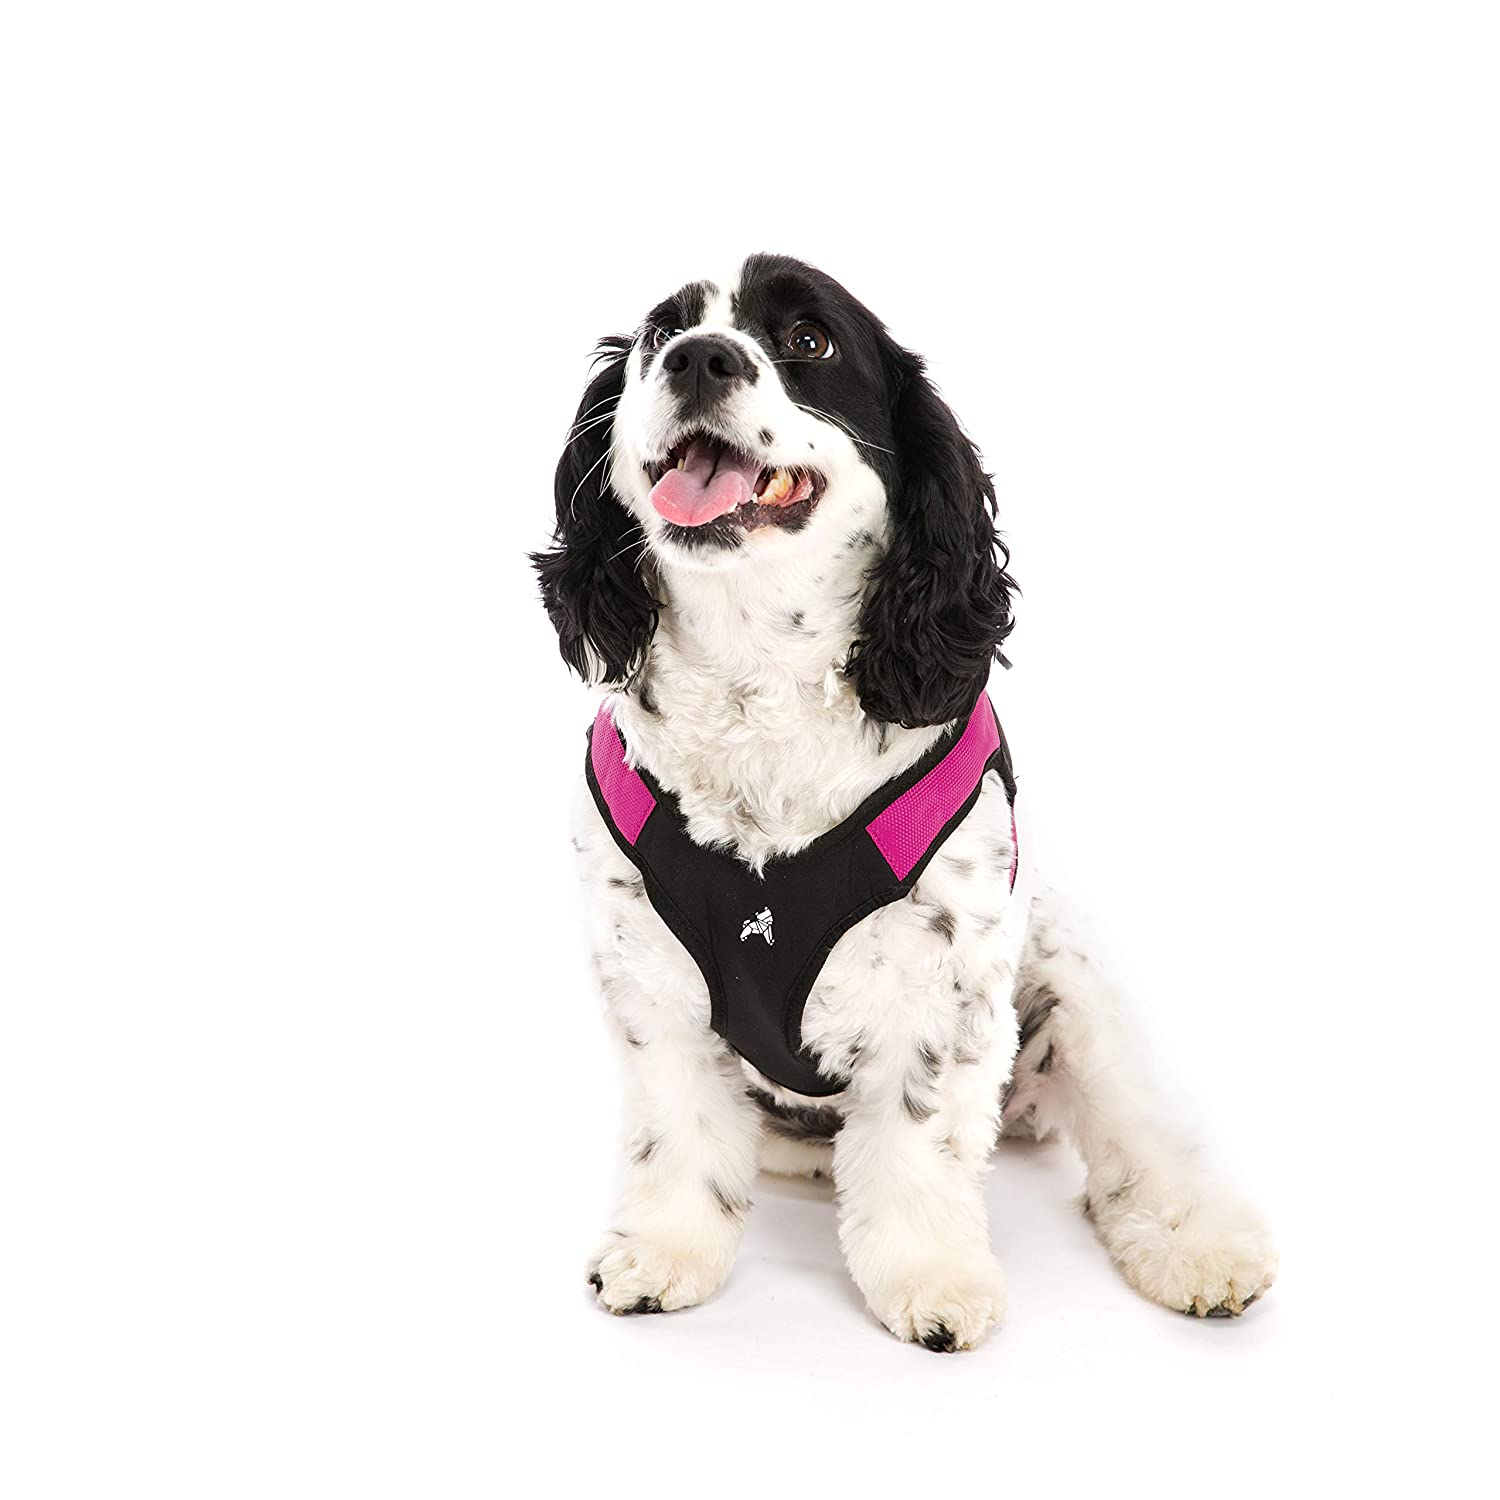 Gooby Escape Free Easy Fit Harness, Small Dog Step-in Harness for Dogs That Like to Escape Their Harness, Hot Pink, Large